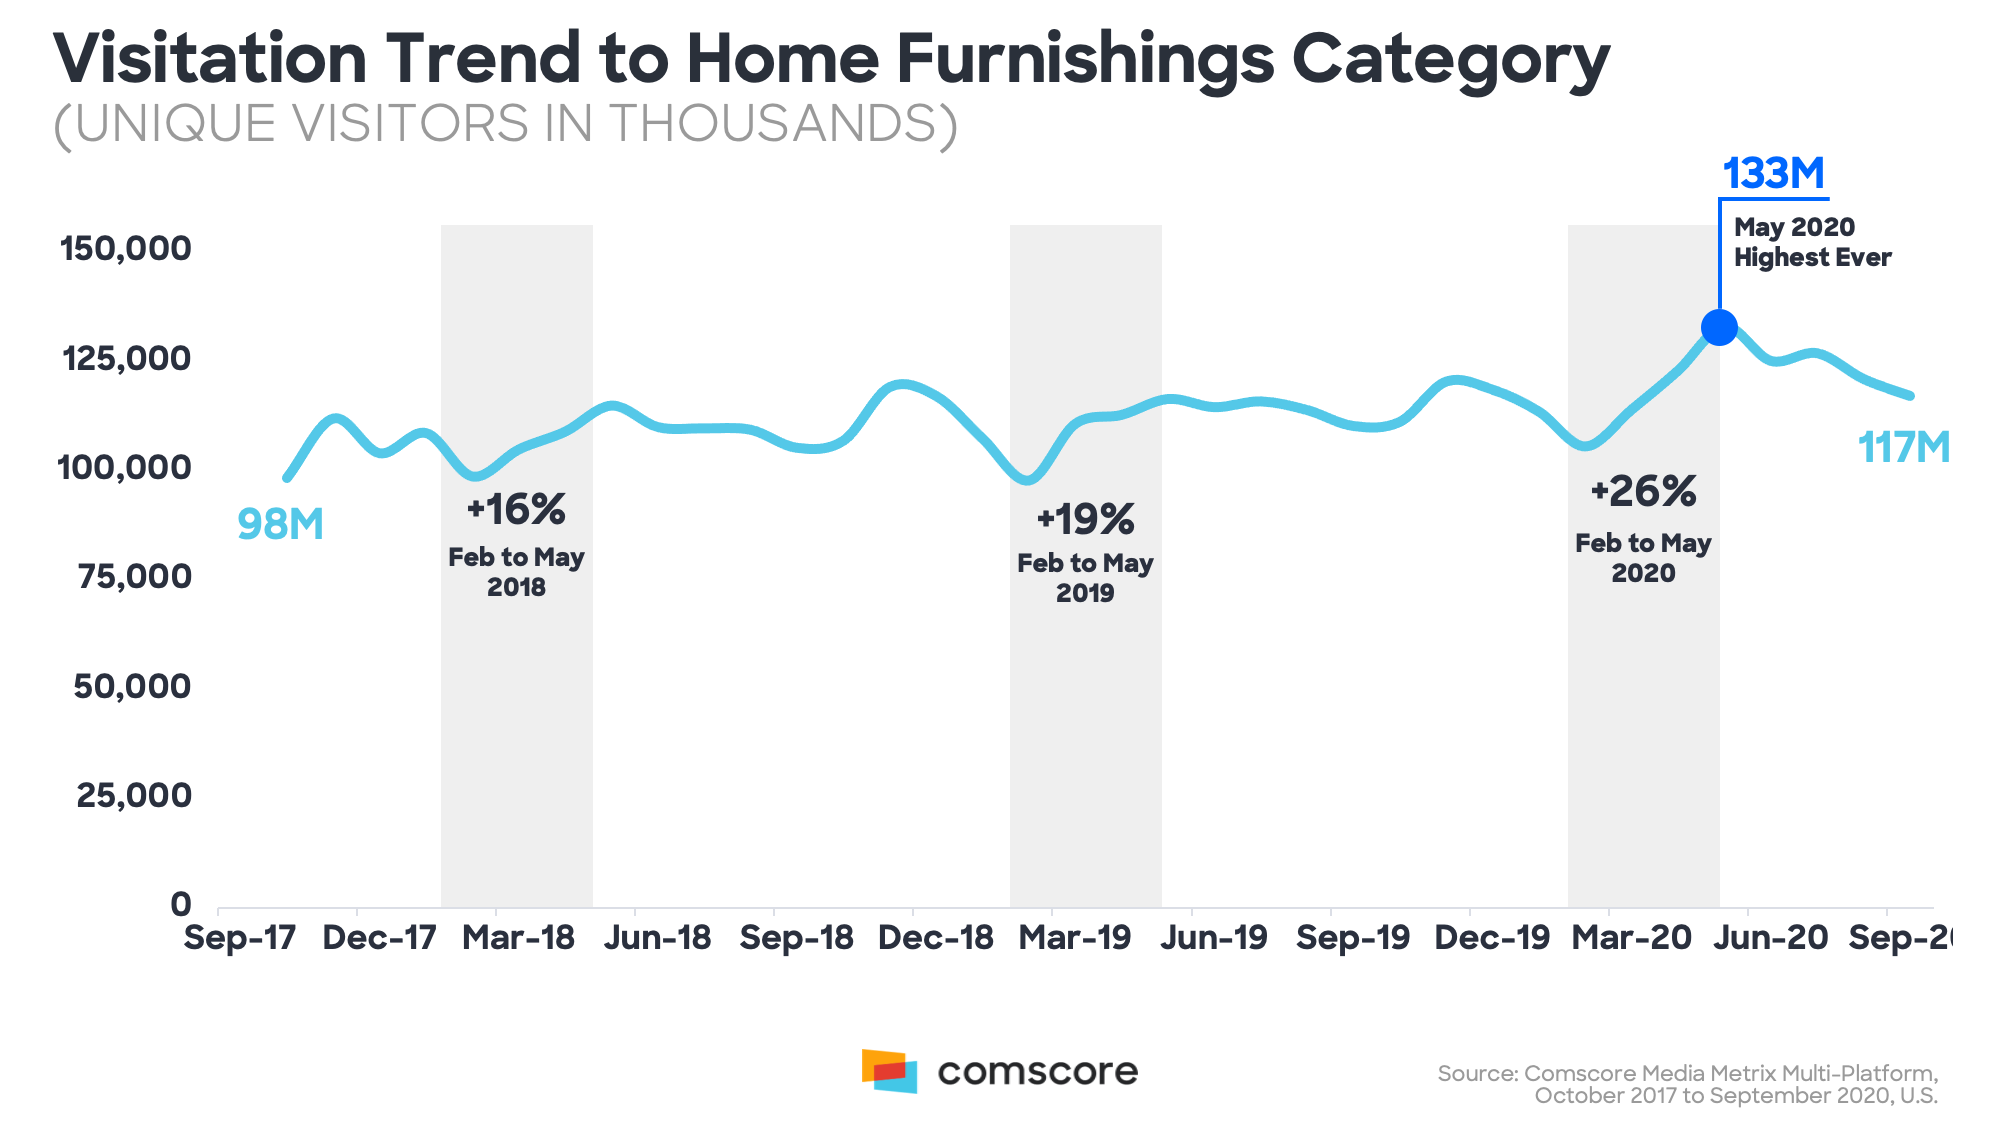 Visitation Trends to Home Furnishings Category